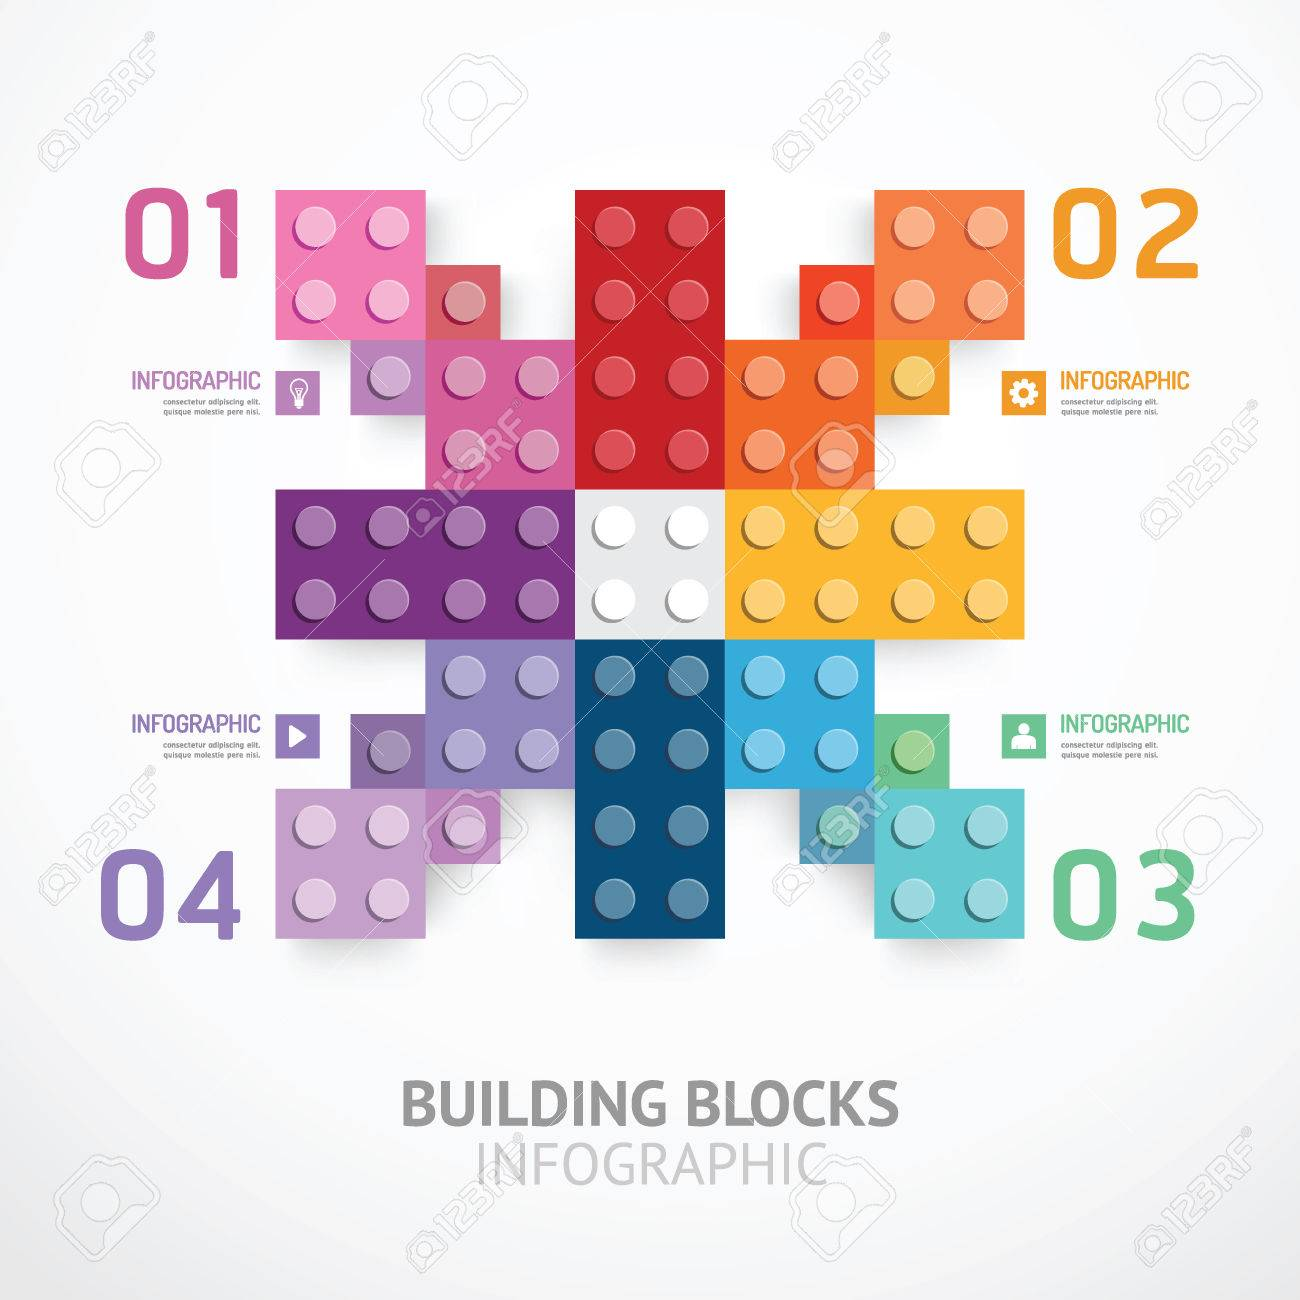 infographic color building blocks banner template royalty free